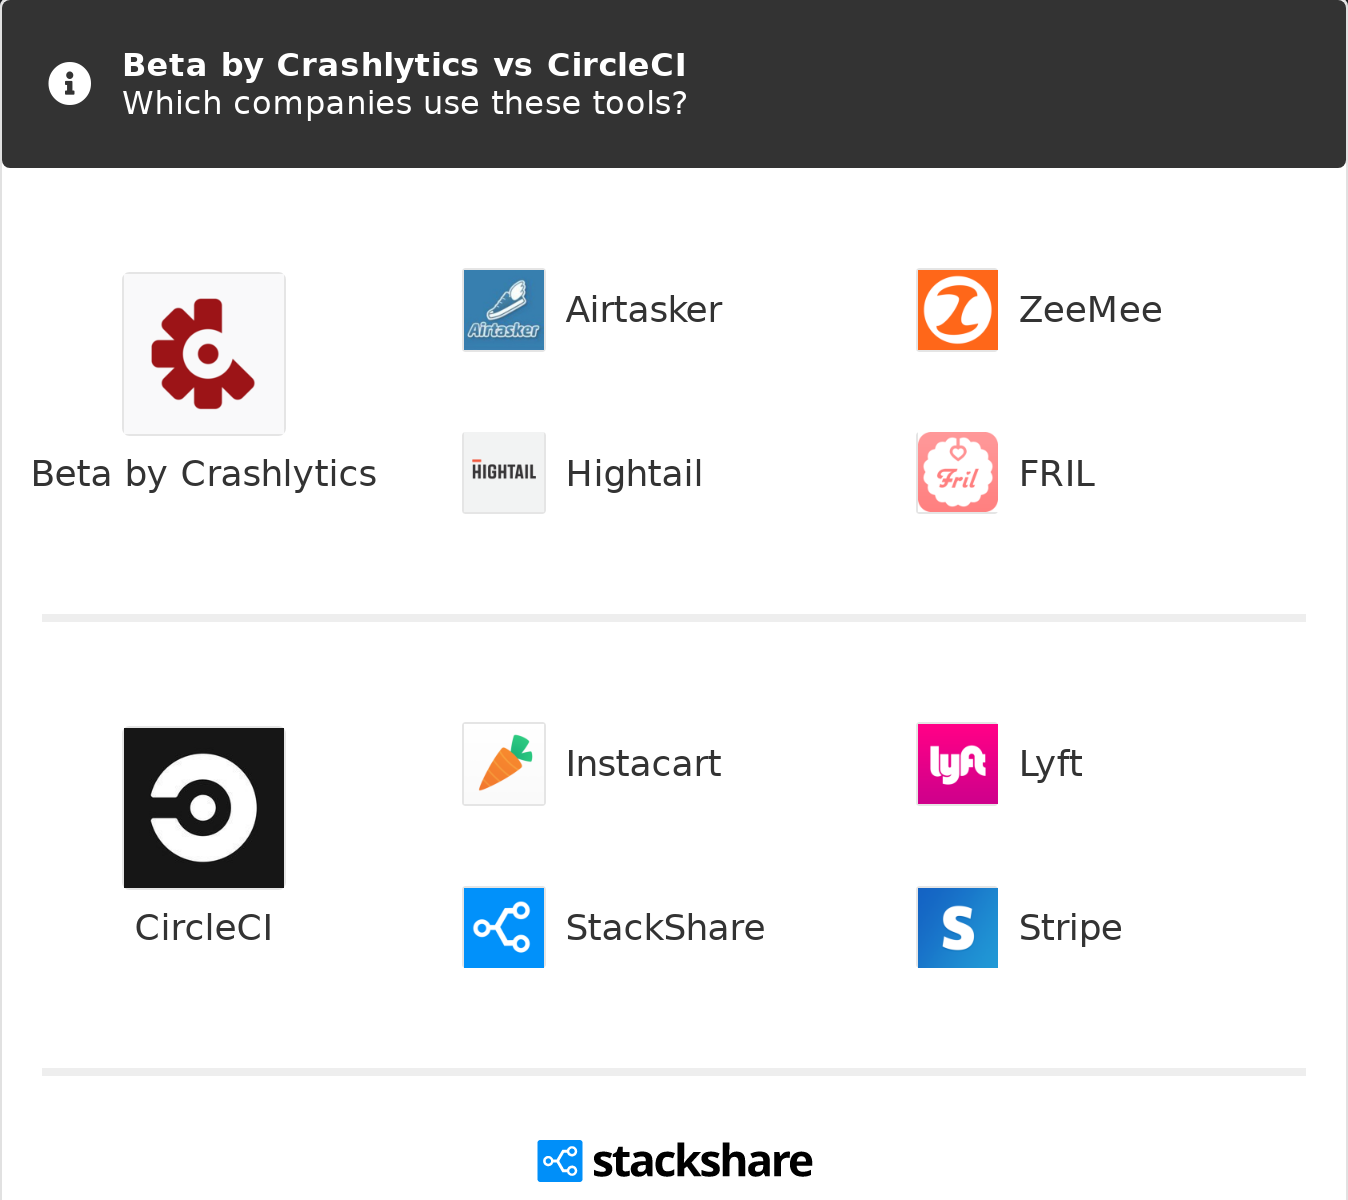 Beta by Crashlytics vs CircleCI | What are the differences?